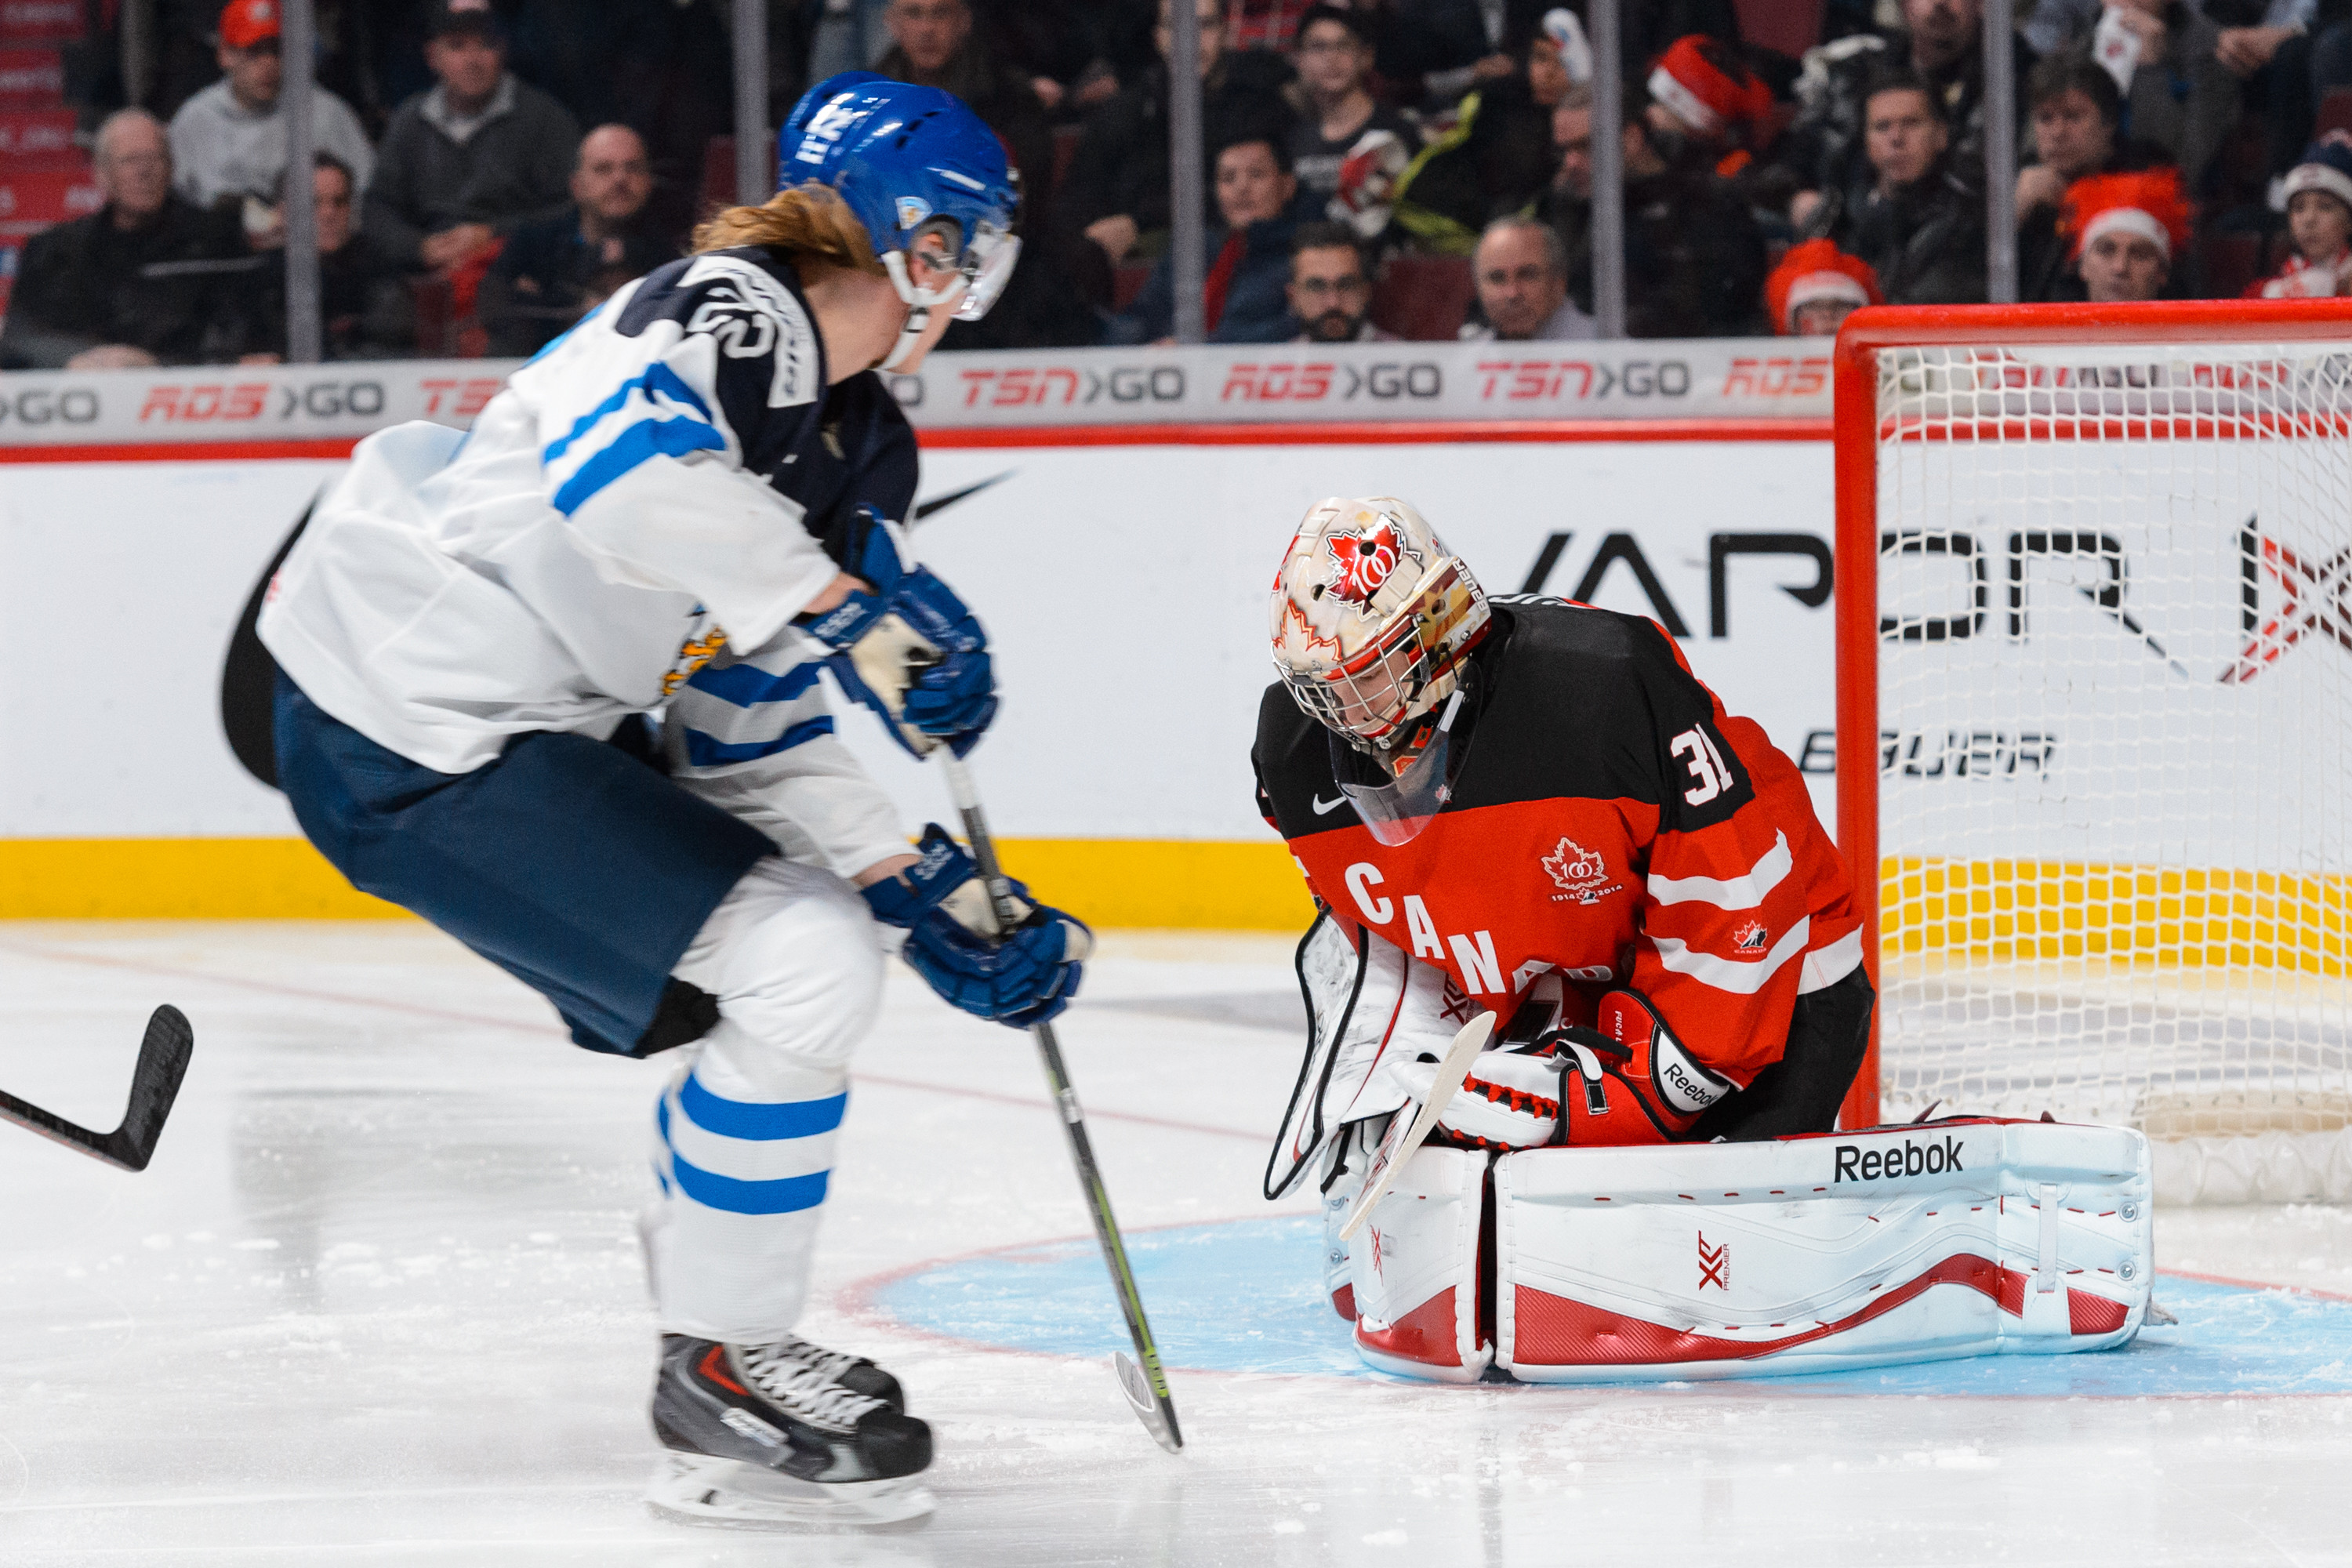 Roope Hintz getting a shot on Zach Fucale, a Montreal prospect.